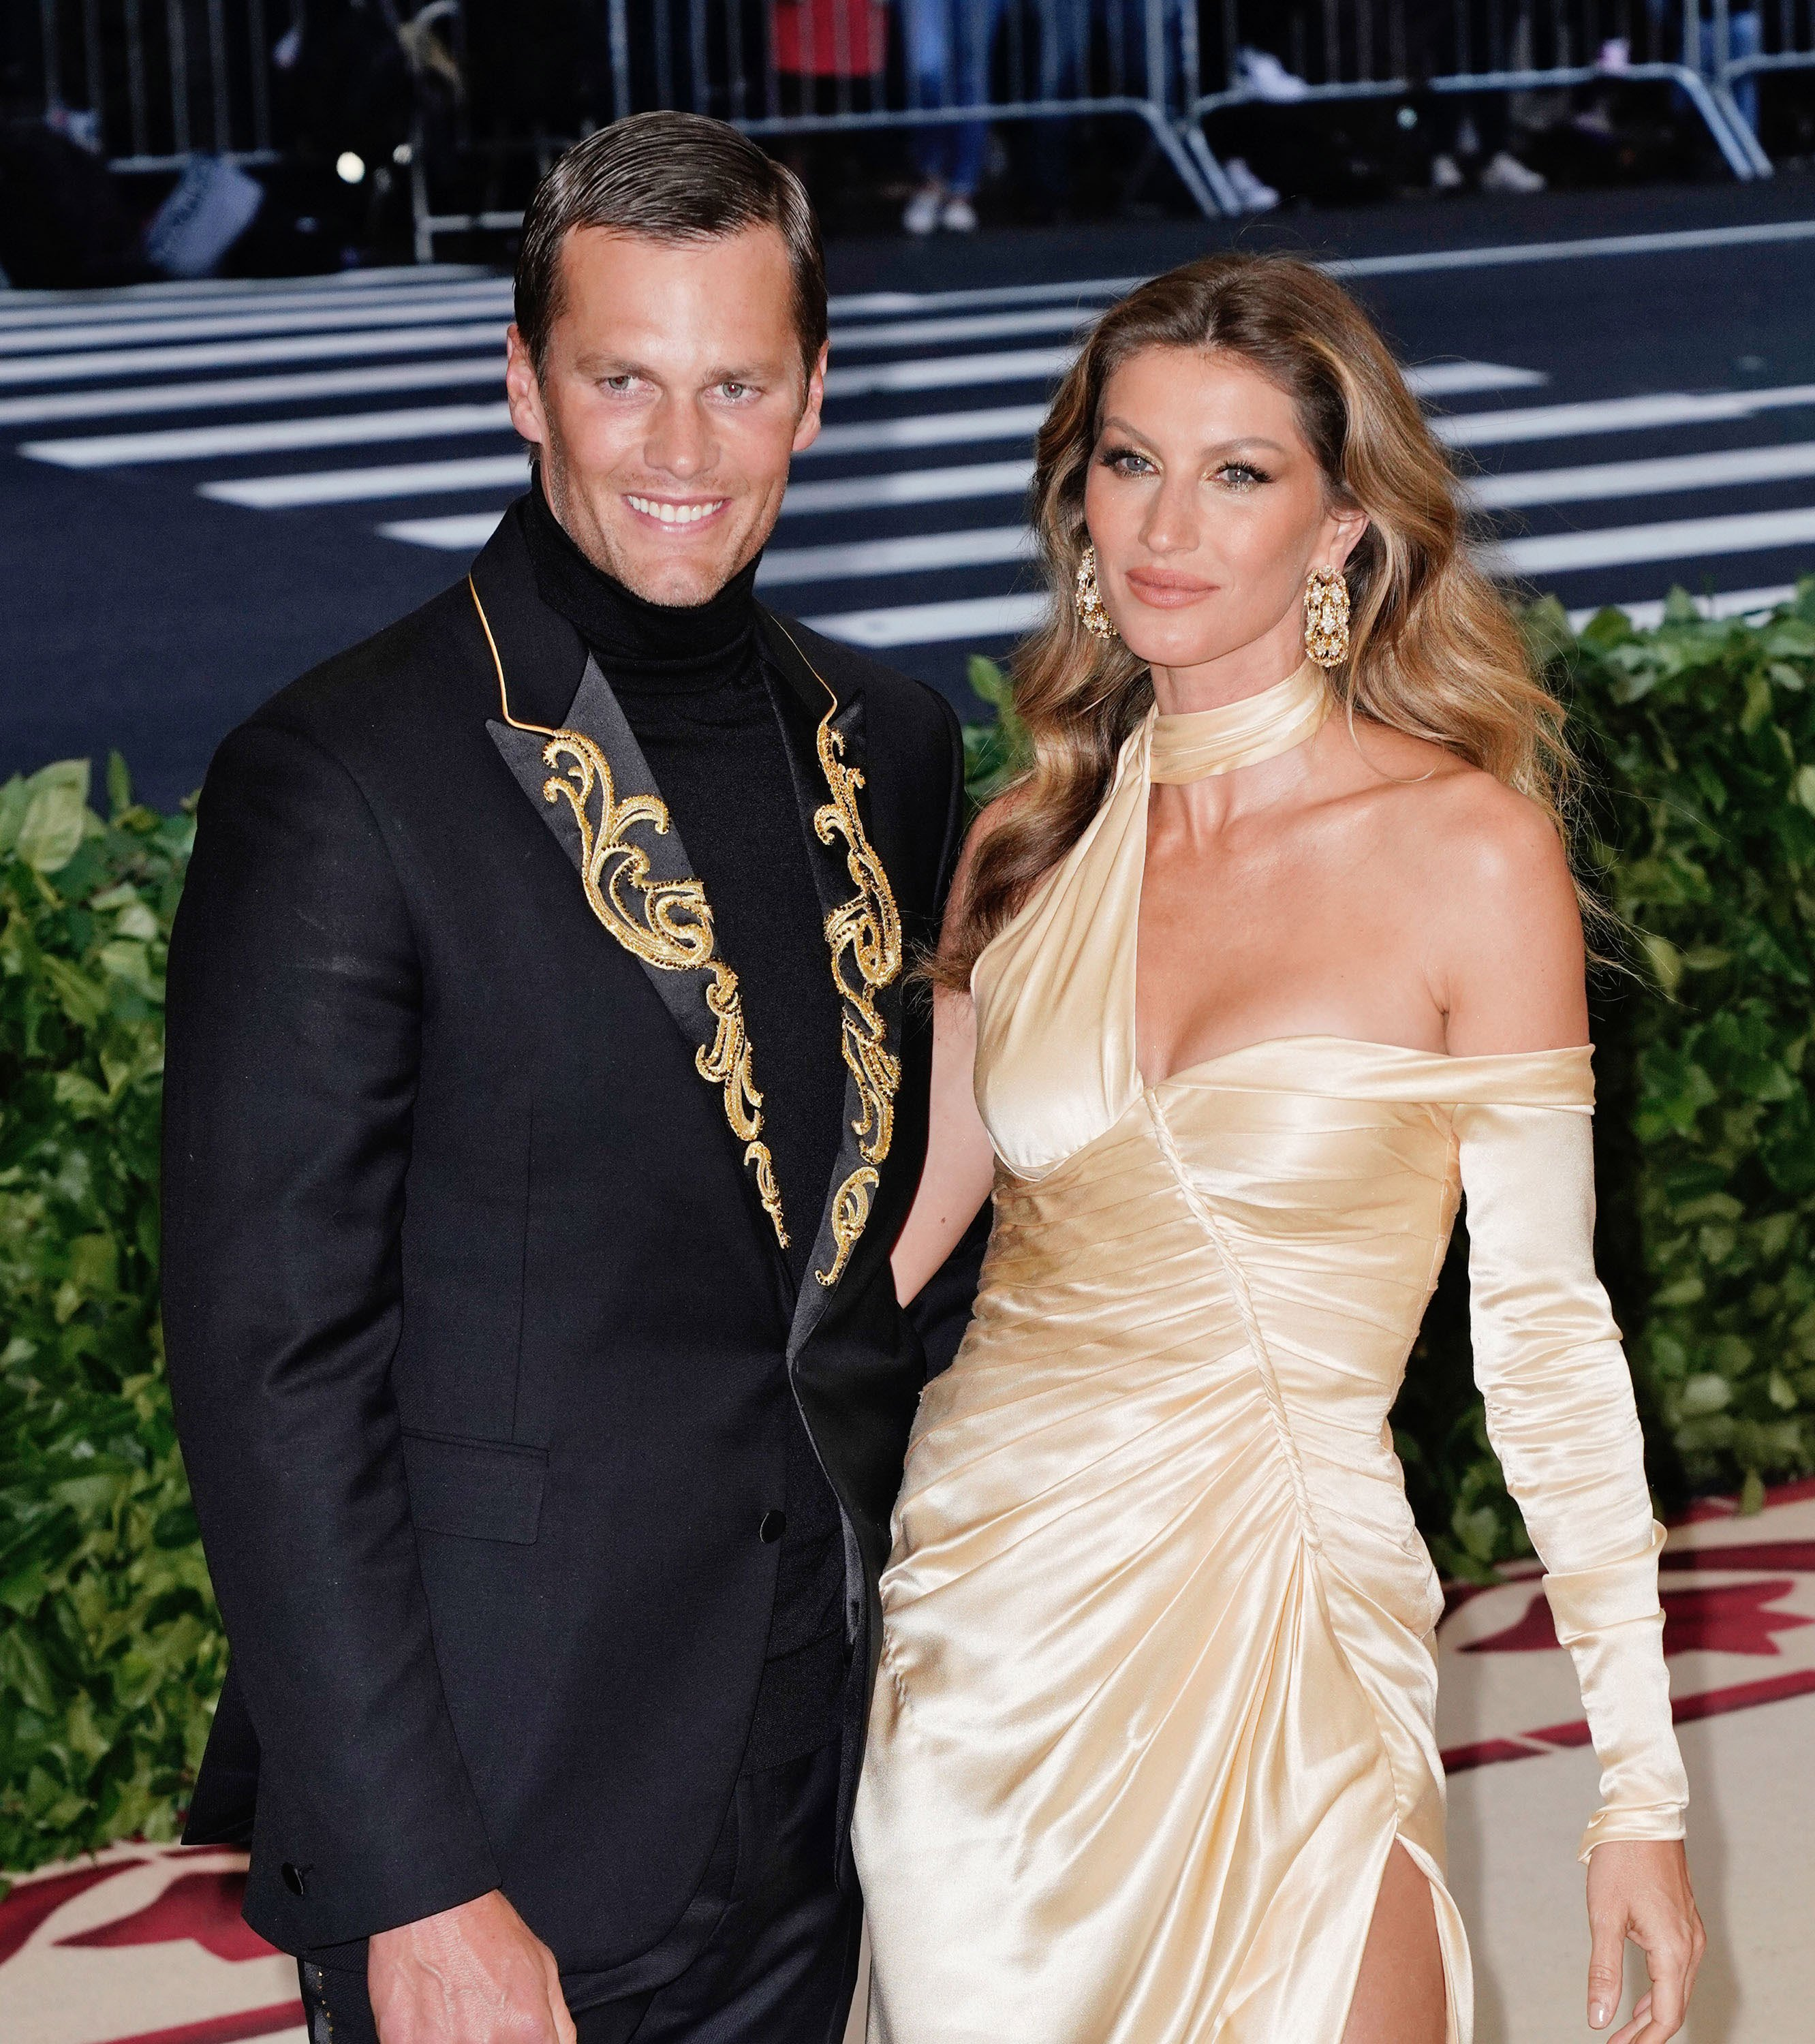 Gisele Bundchen and husband Tom Brady during the 2018 Met Gala in New York City. | Photo: Getty Images